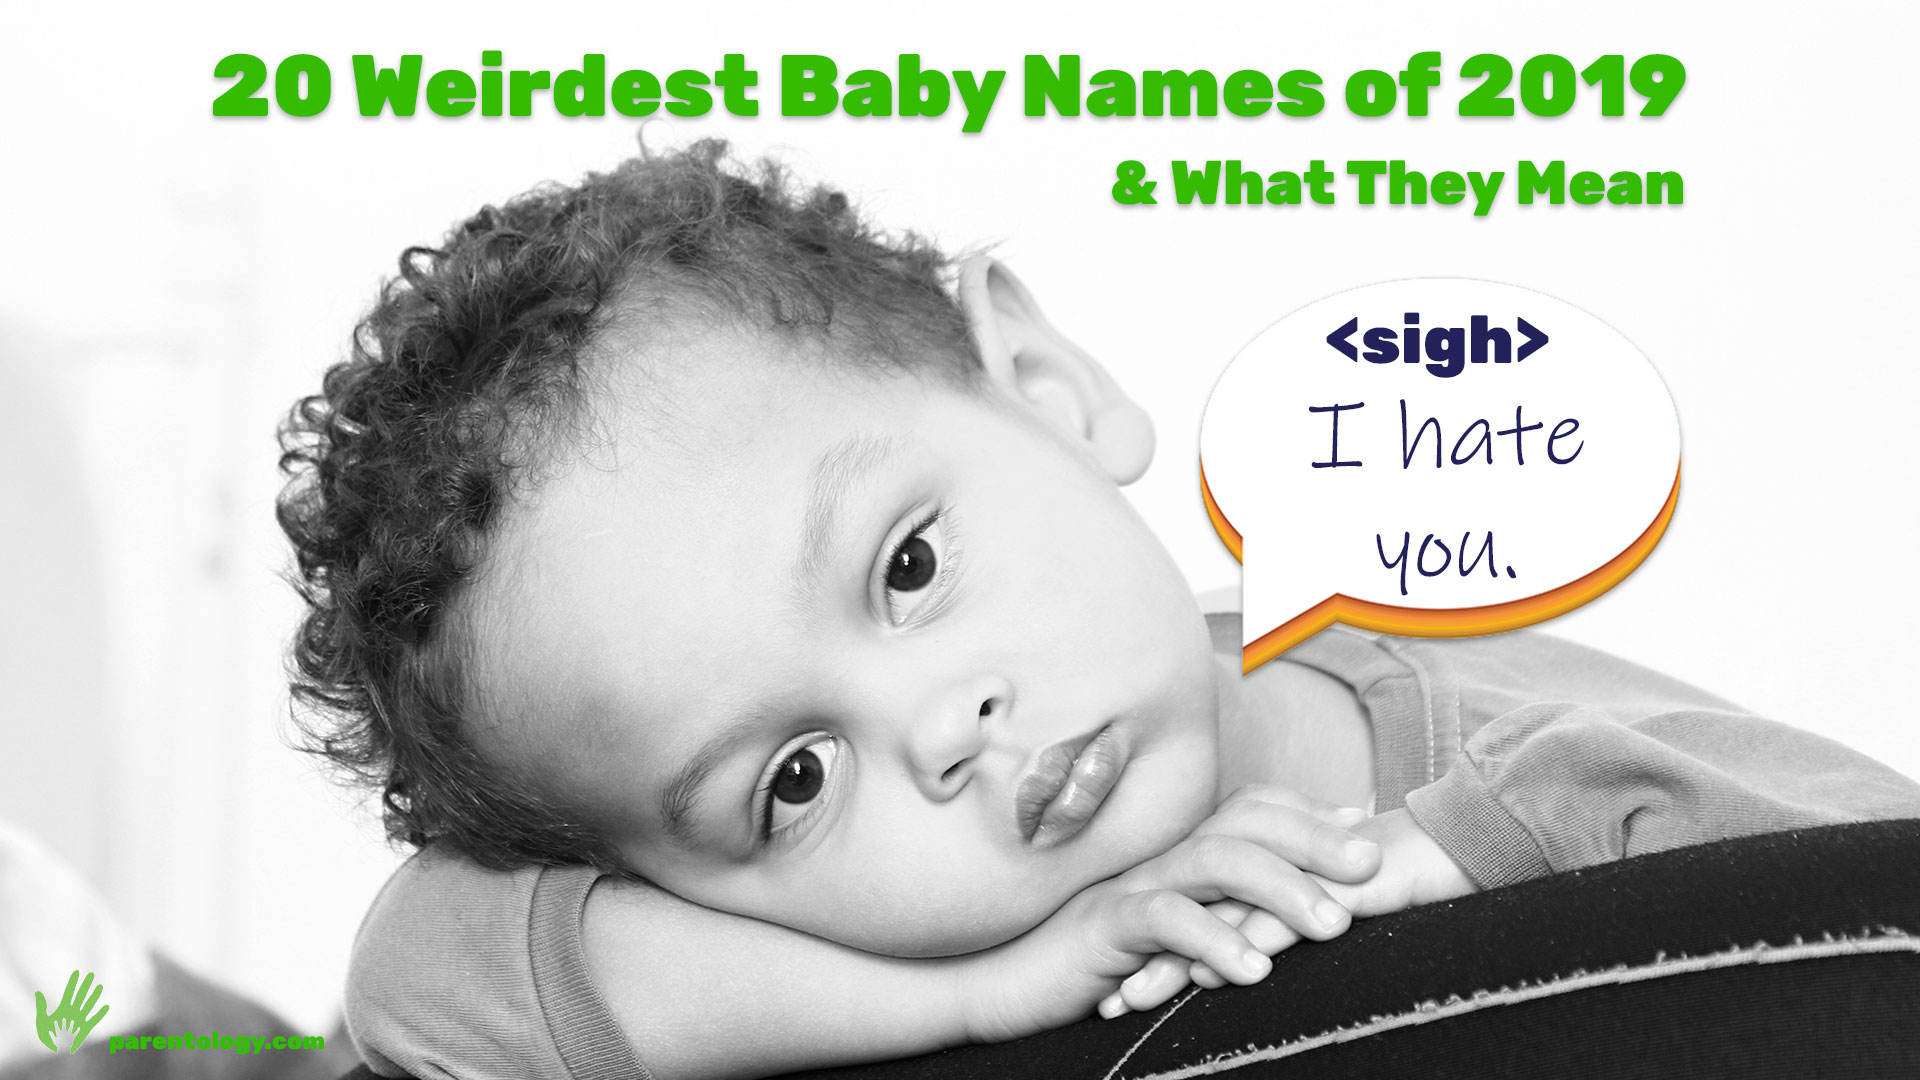 20 Weirdest Baby Names 2019 & What They Mean | Parentology